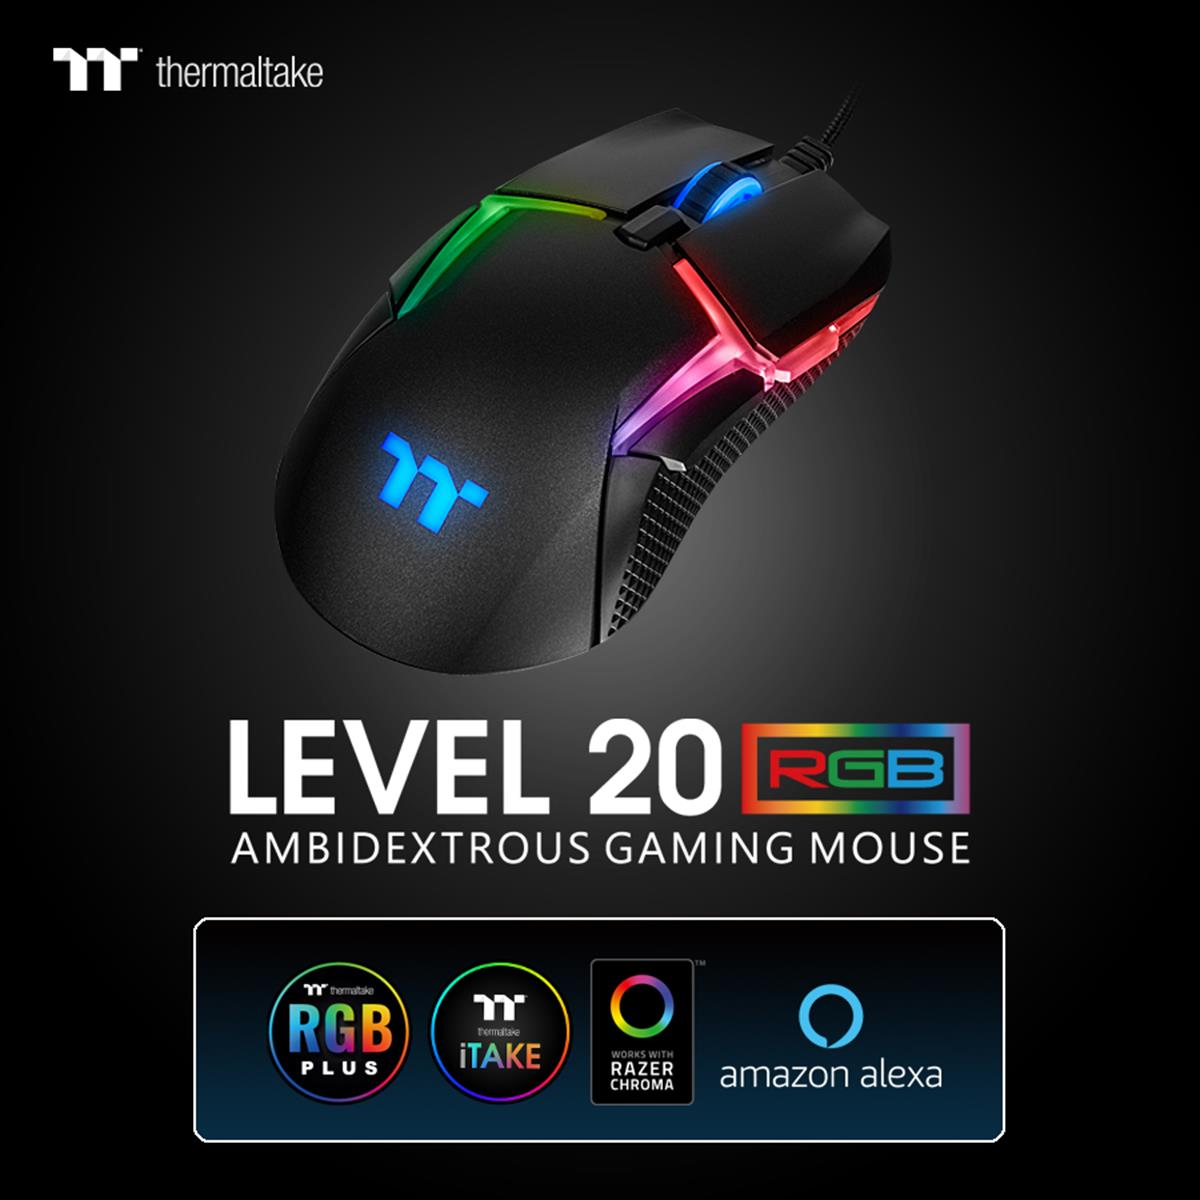 Thermaltake Launches its first Level 20 Gaming Mouse